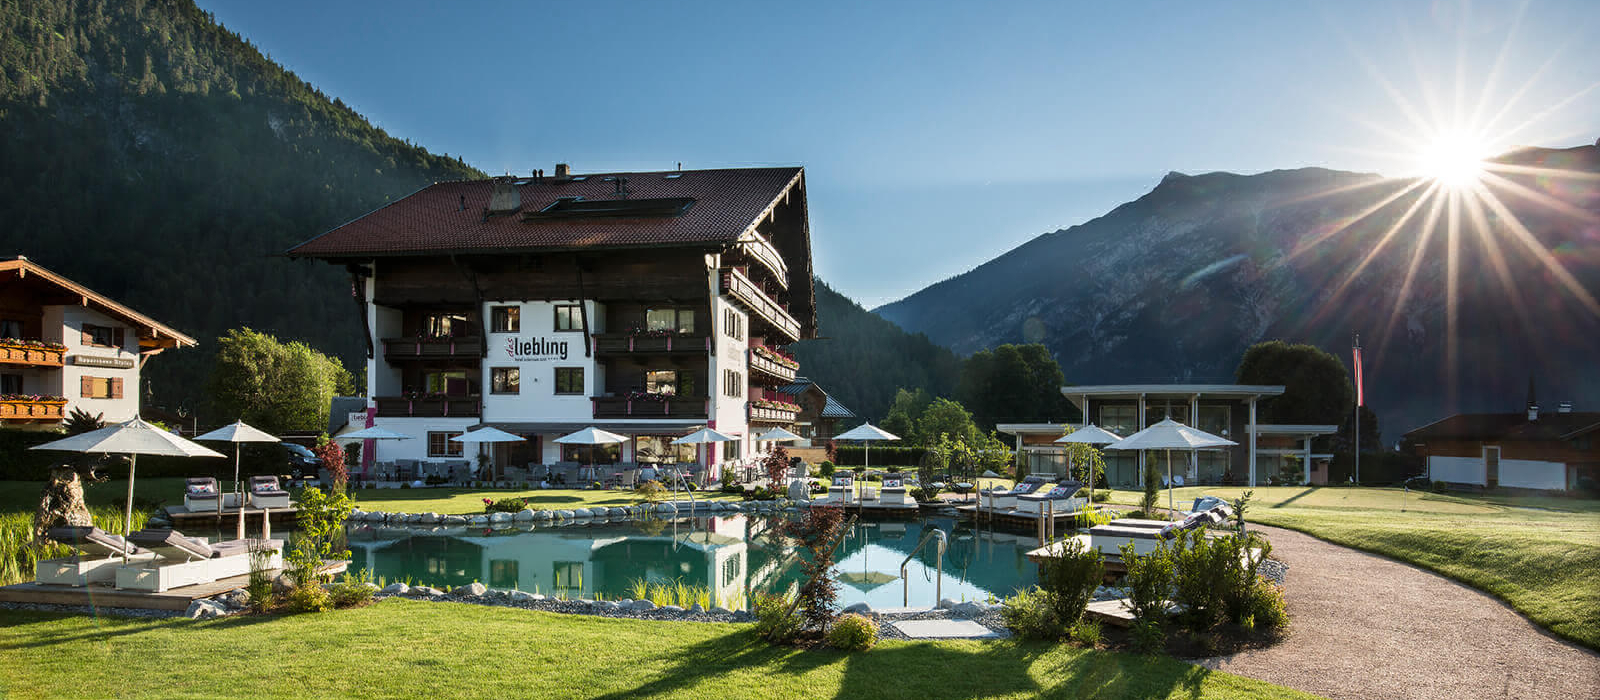 Wellnesshotel in Pertisau, Wellnesshotel Pertisau